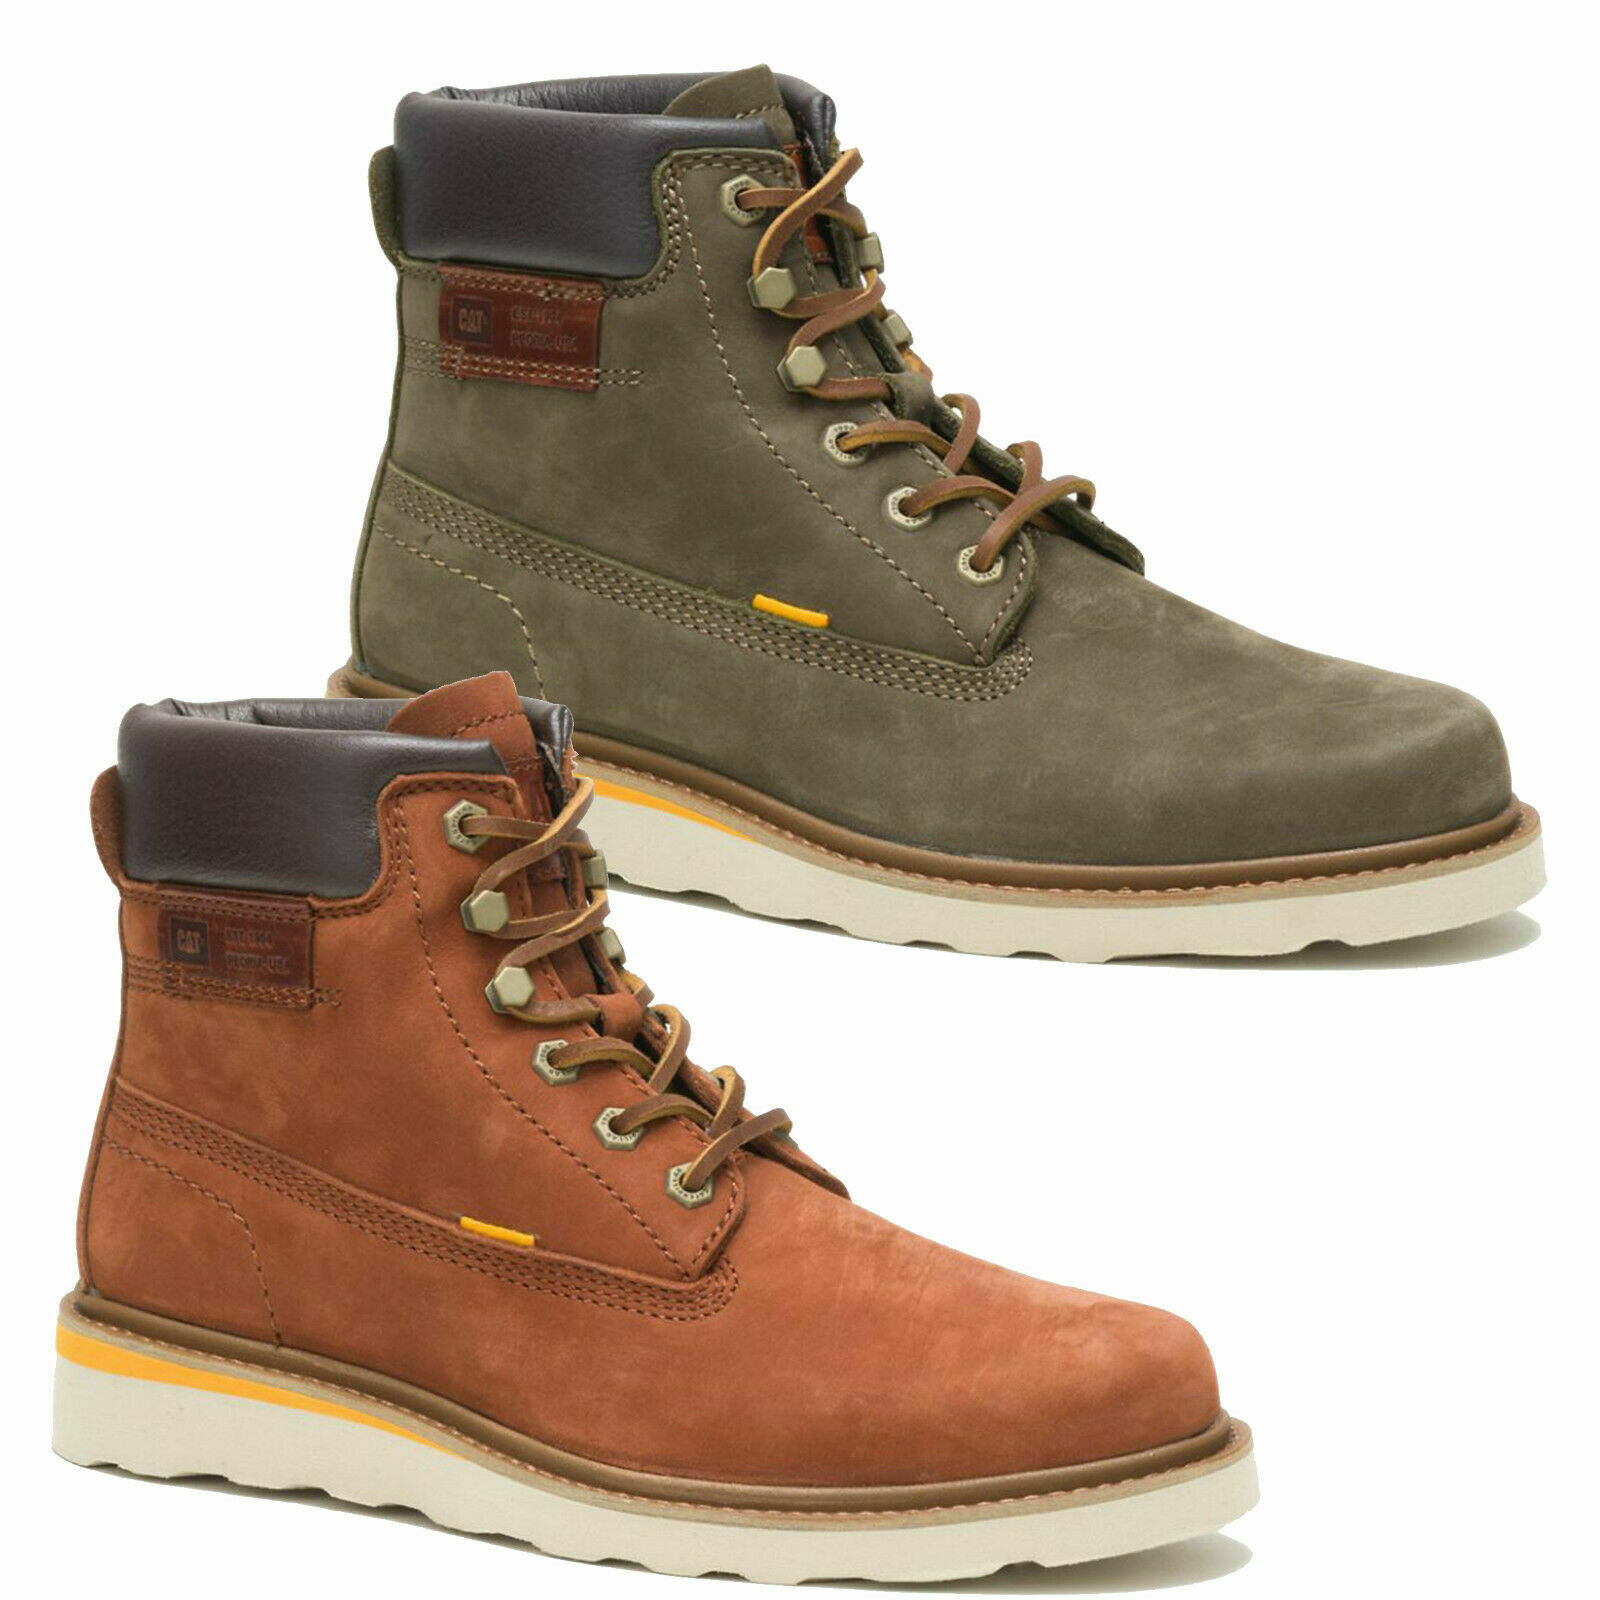 Mens Caterpillar Jackson Hi Biker Riding Lace Up Ankle Boots Sizes 7 to 12